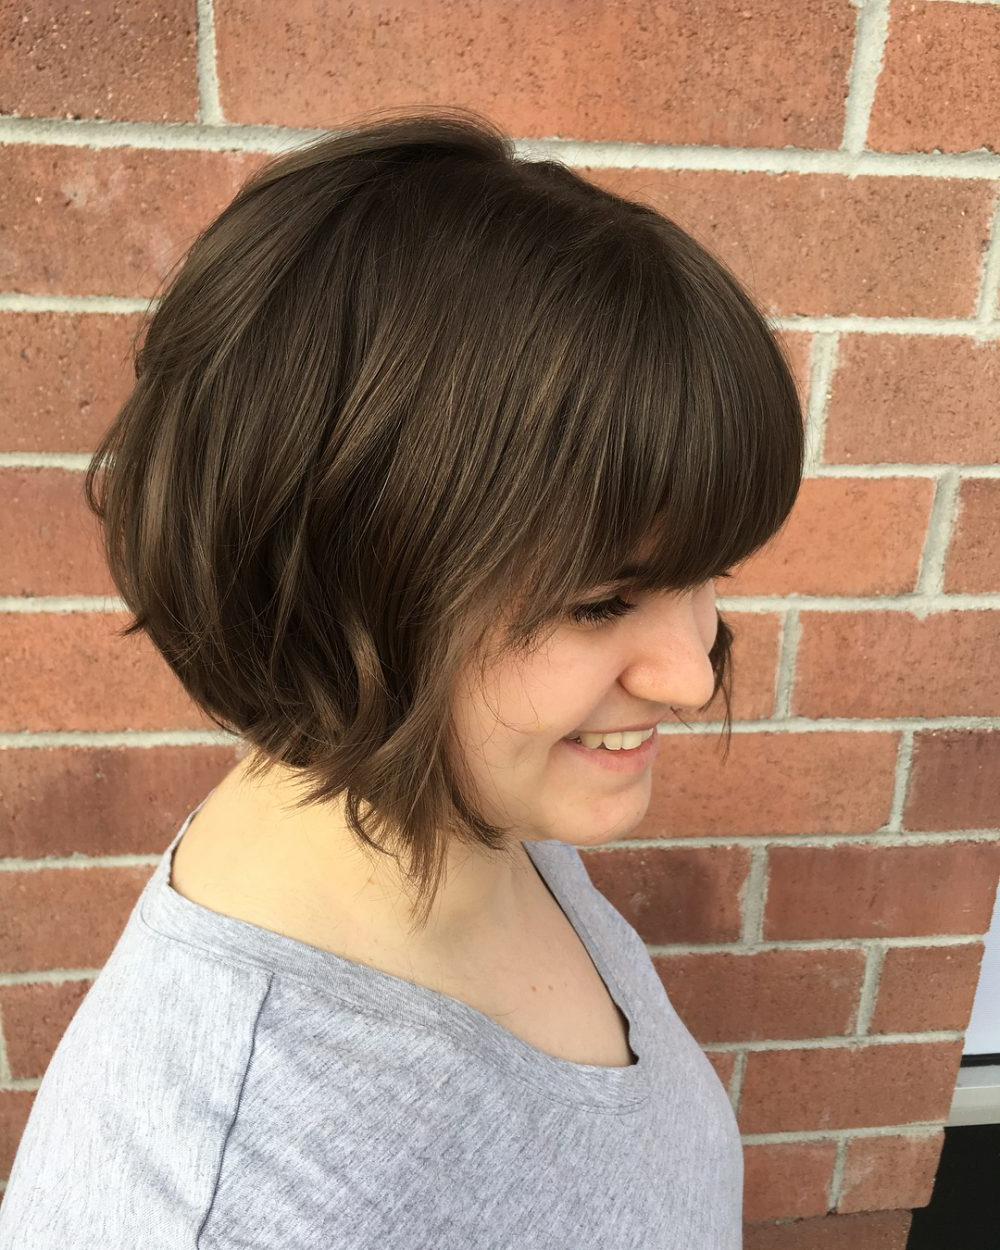 34 Greatest Short Haircuts And Hairstyles For Thick Hair For 2018 Throughout Layered Tapered Pixie Hairstyles For Thick Hair (View 9 of 20)